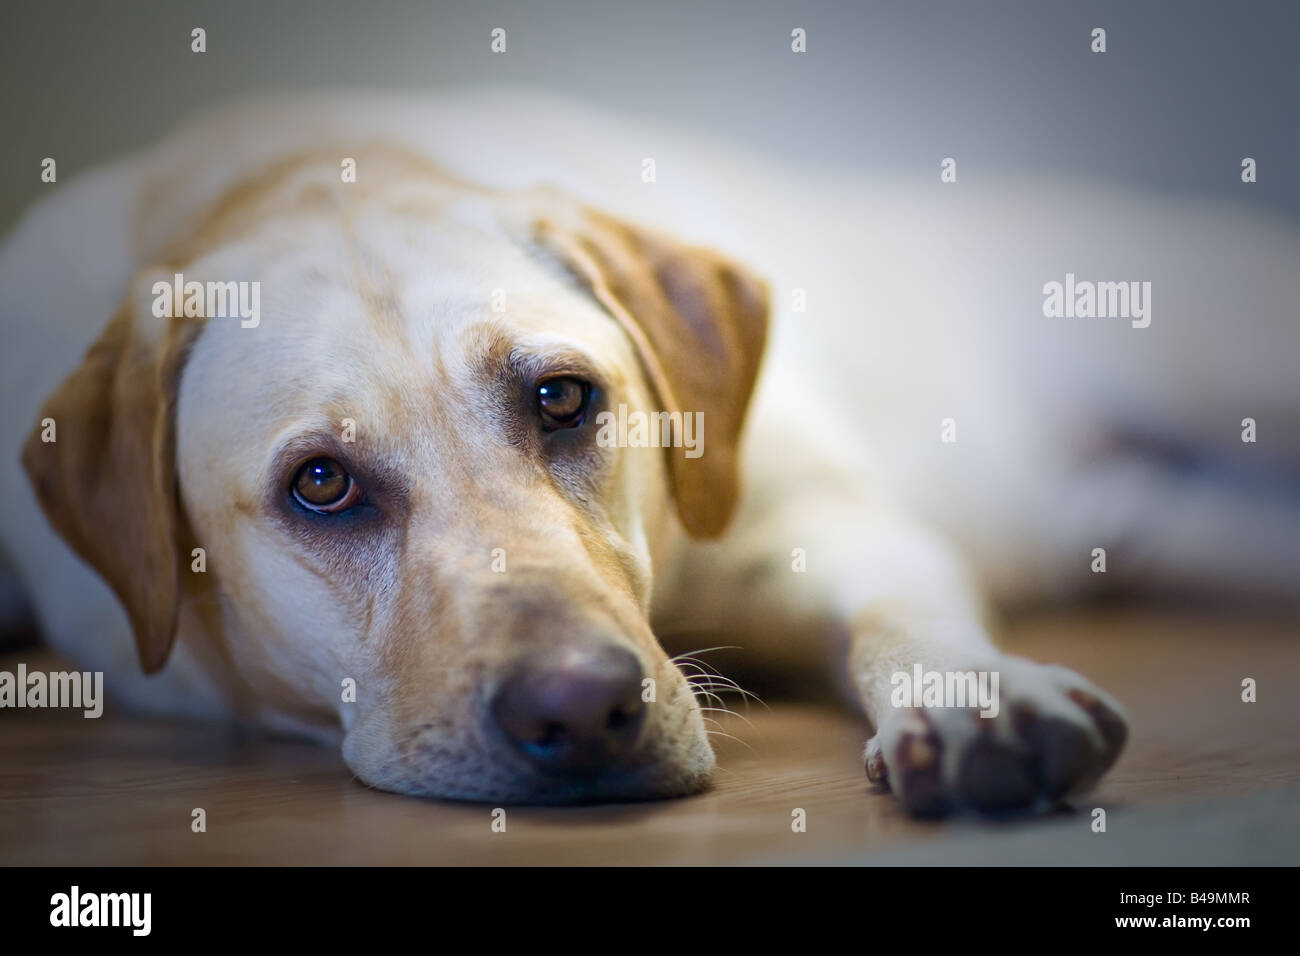 Yellow Labrador Retriever, lying on the floor. - Stock Image